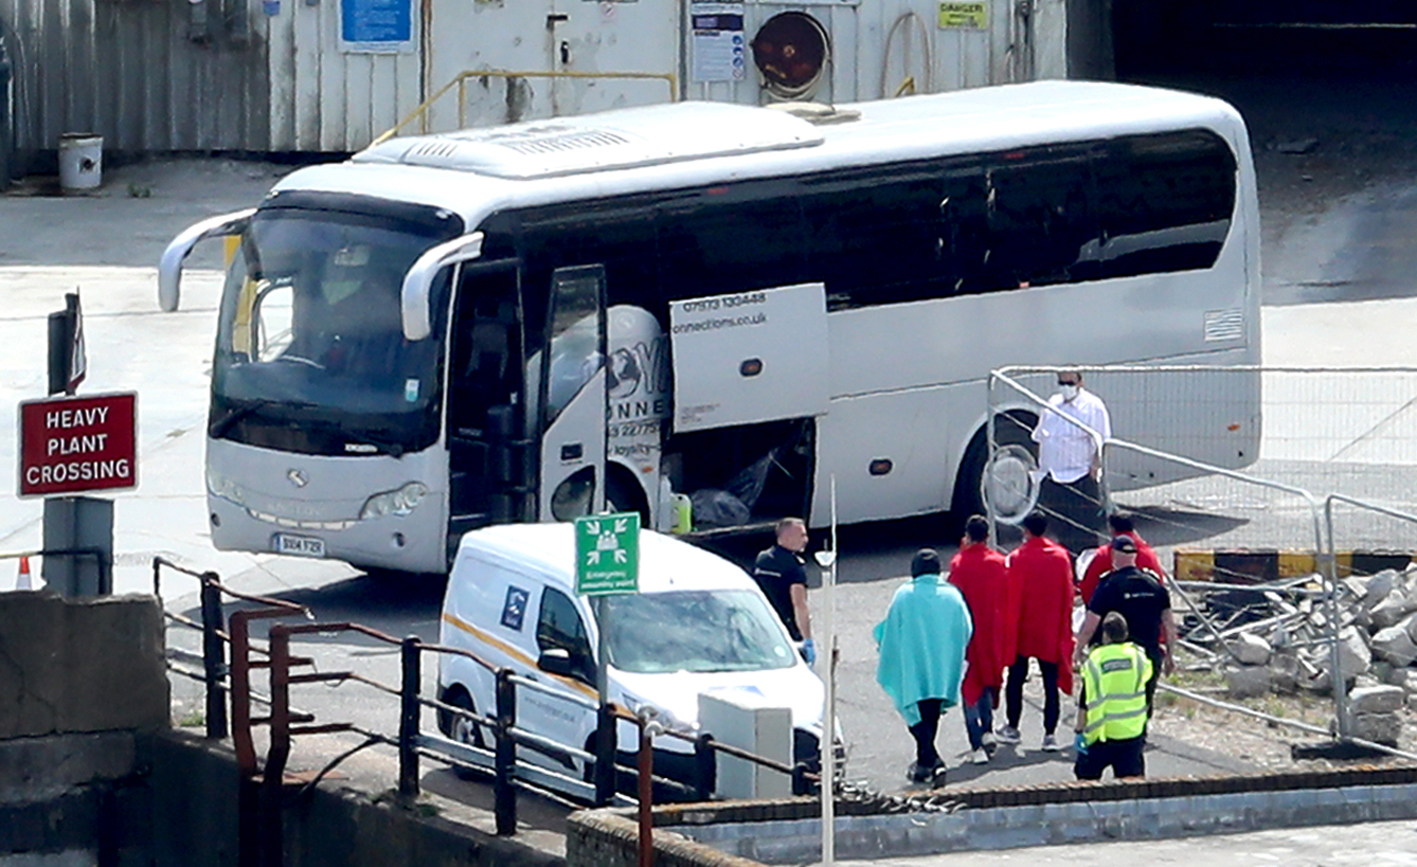 Border Force officers escort men thought to be migrants to a waiting bus in Dover, Kent, after small boat incidents in The Channel earlier this morning. Home Secretary, Priti Patel, is set to unveil details of how the UK's points-based immigration system - which will come into effect on January 1 after freedom of movement ends - will operate.